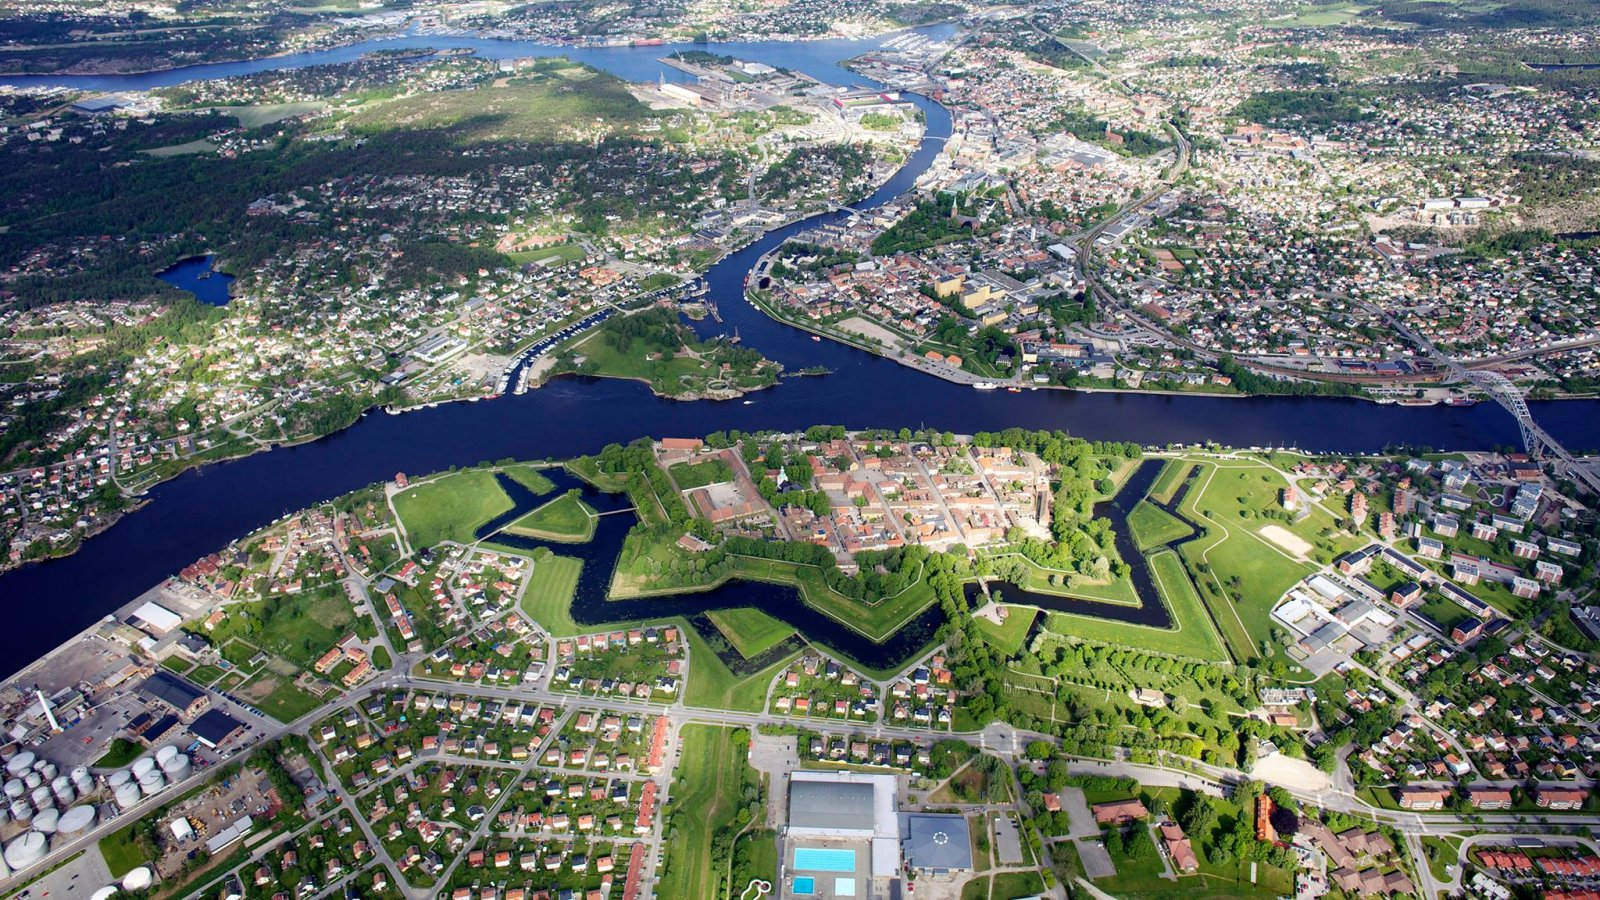 The City Fredrikstad